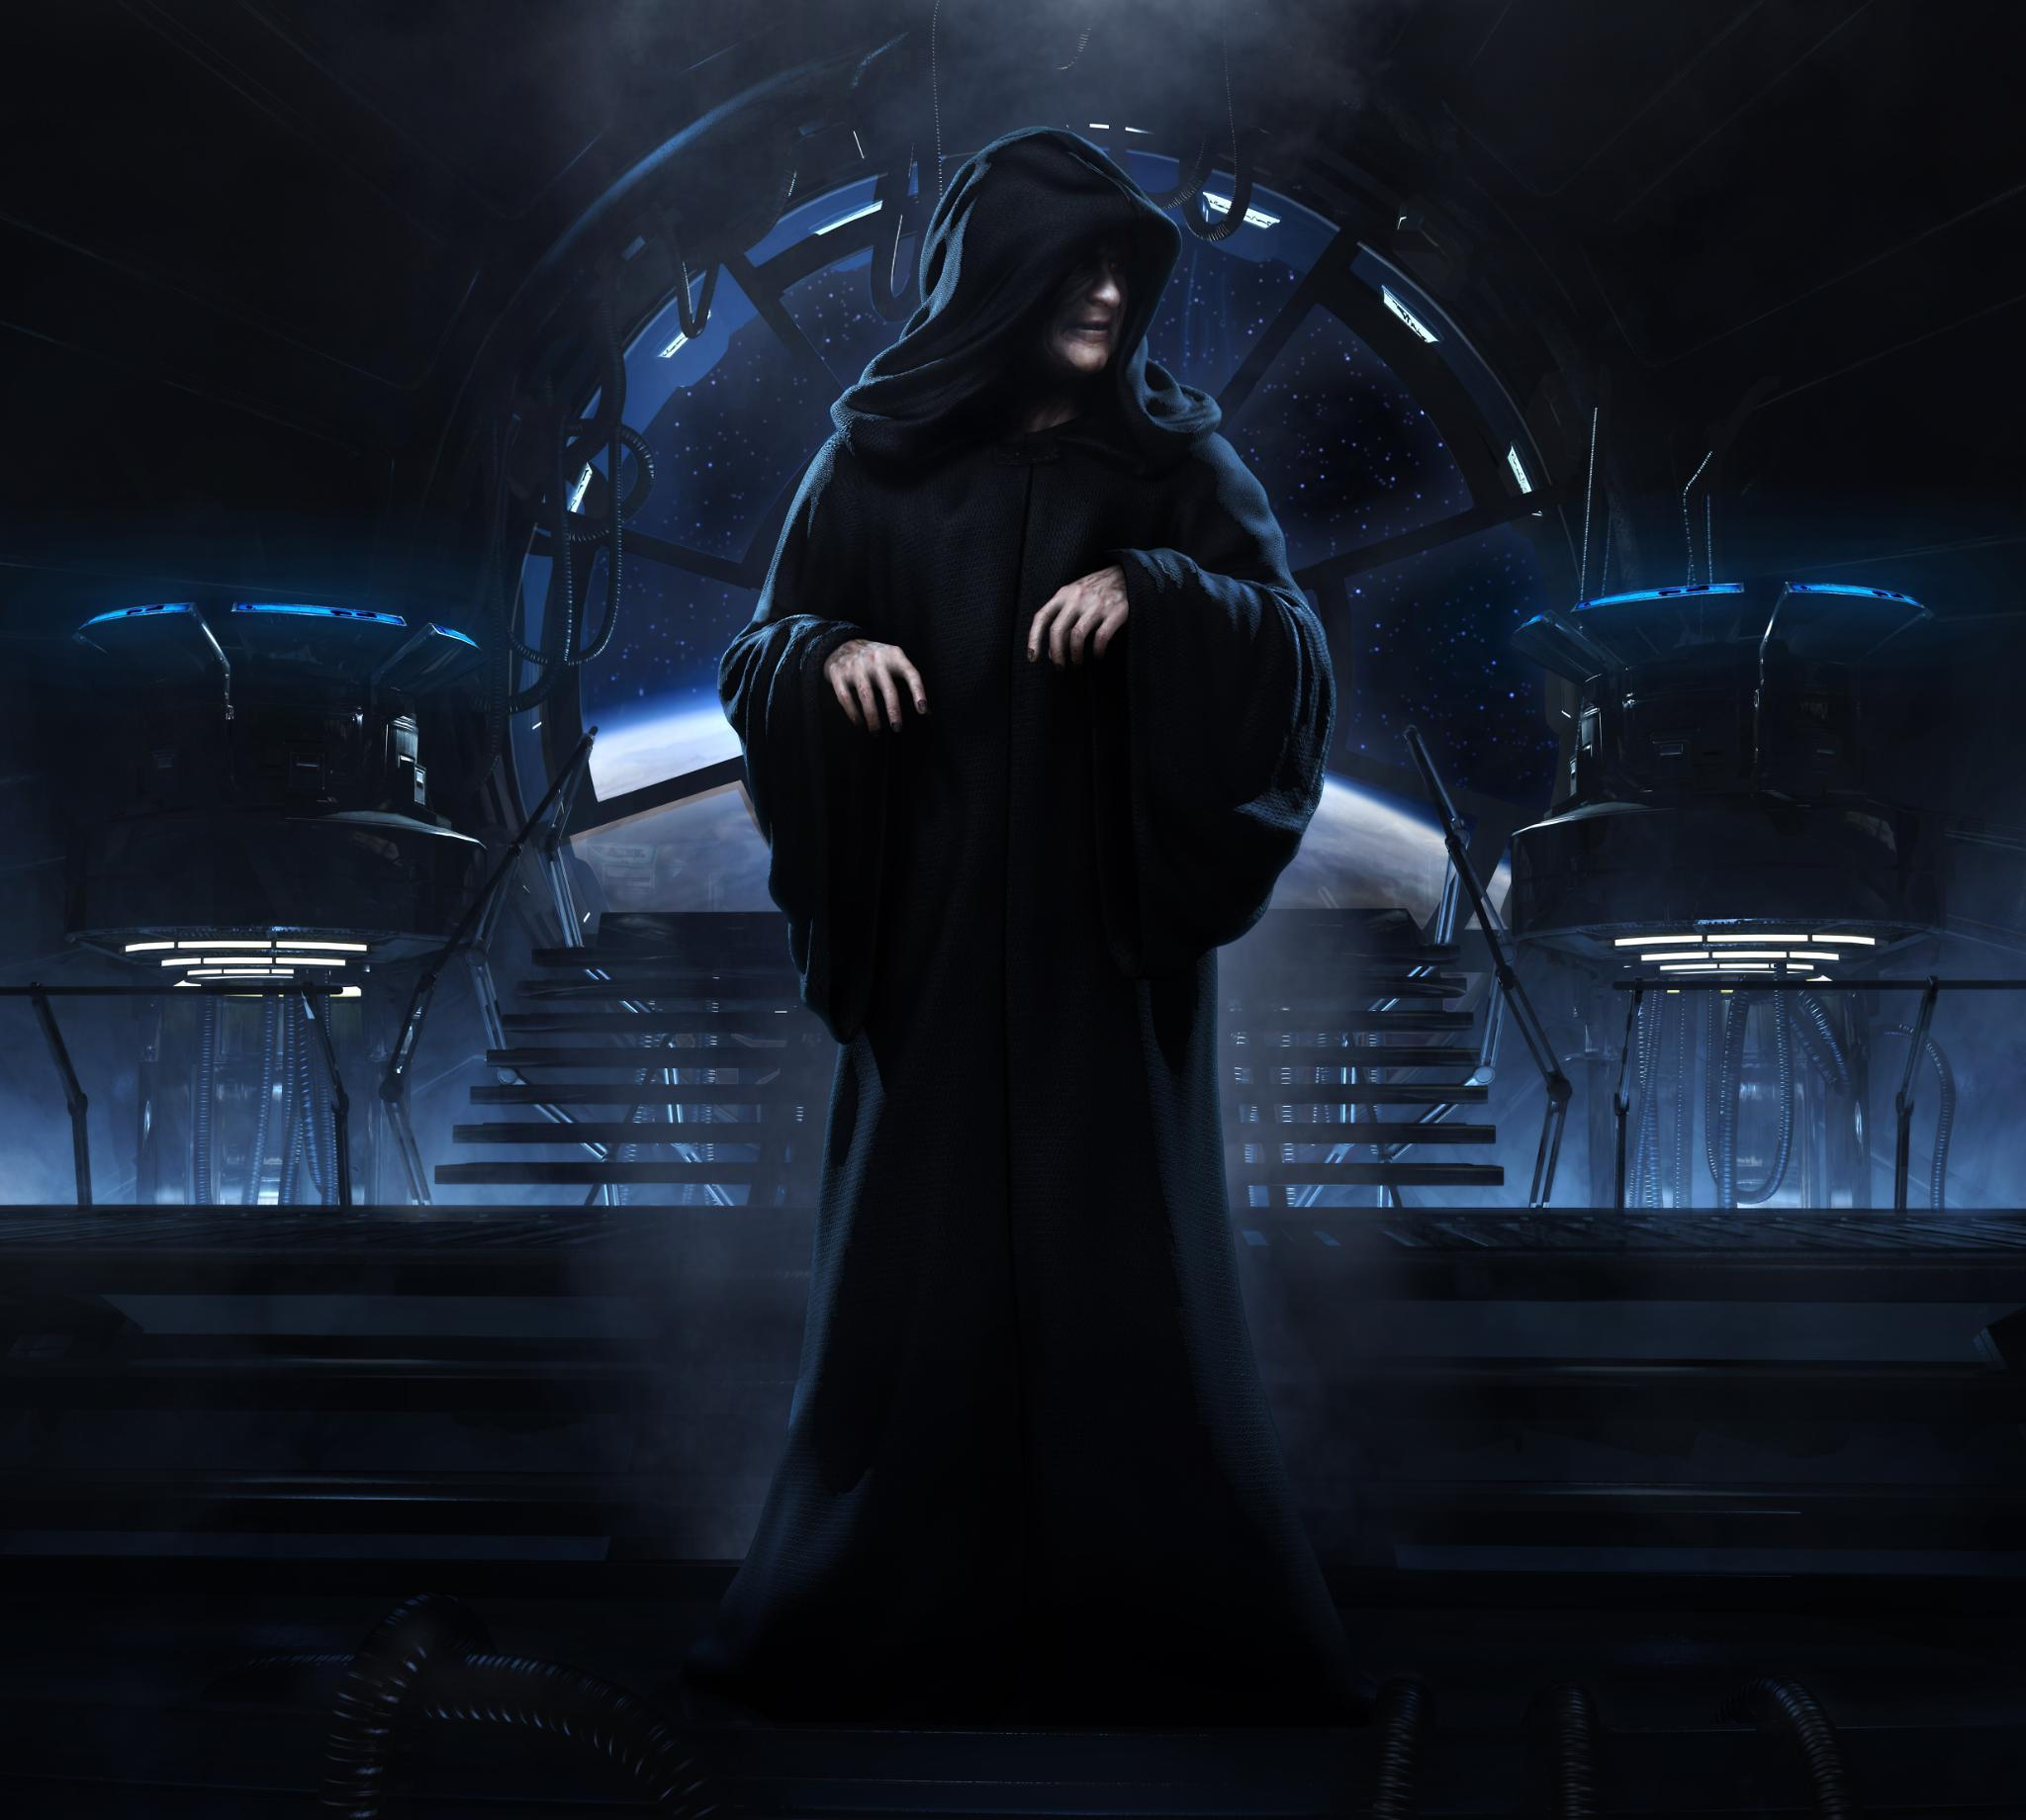 Who was Darth Sidious's apprentice in Episode I-Phantom Menace?